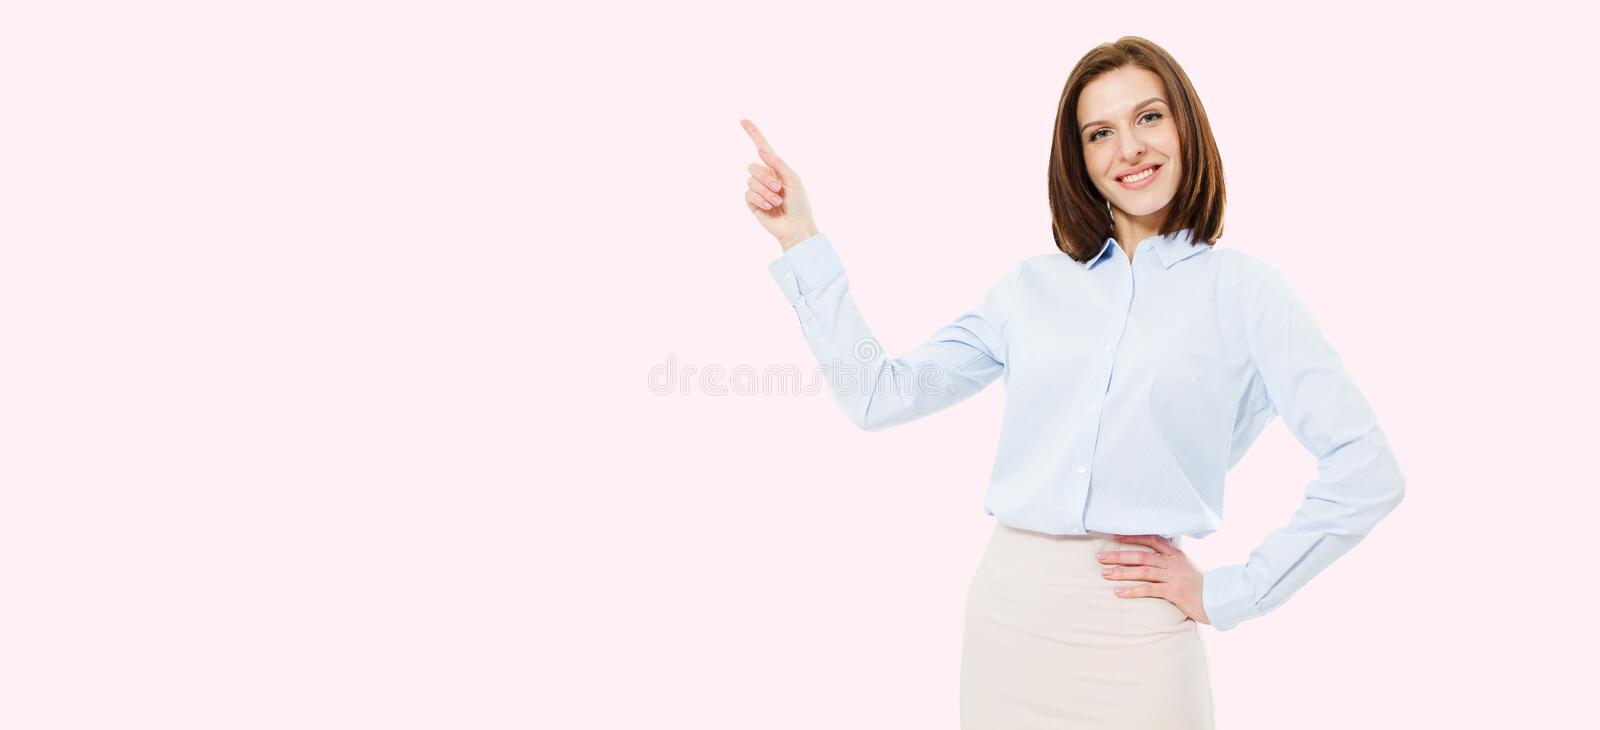 Modern woman pointed on pink background,copy space royalty free stock photography